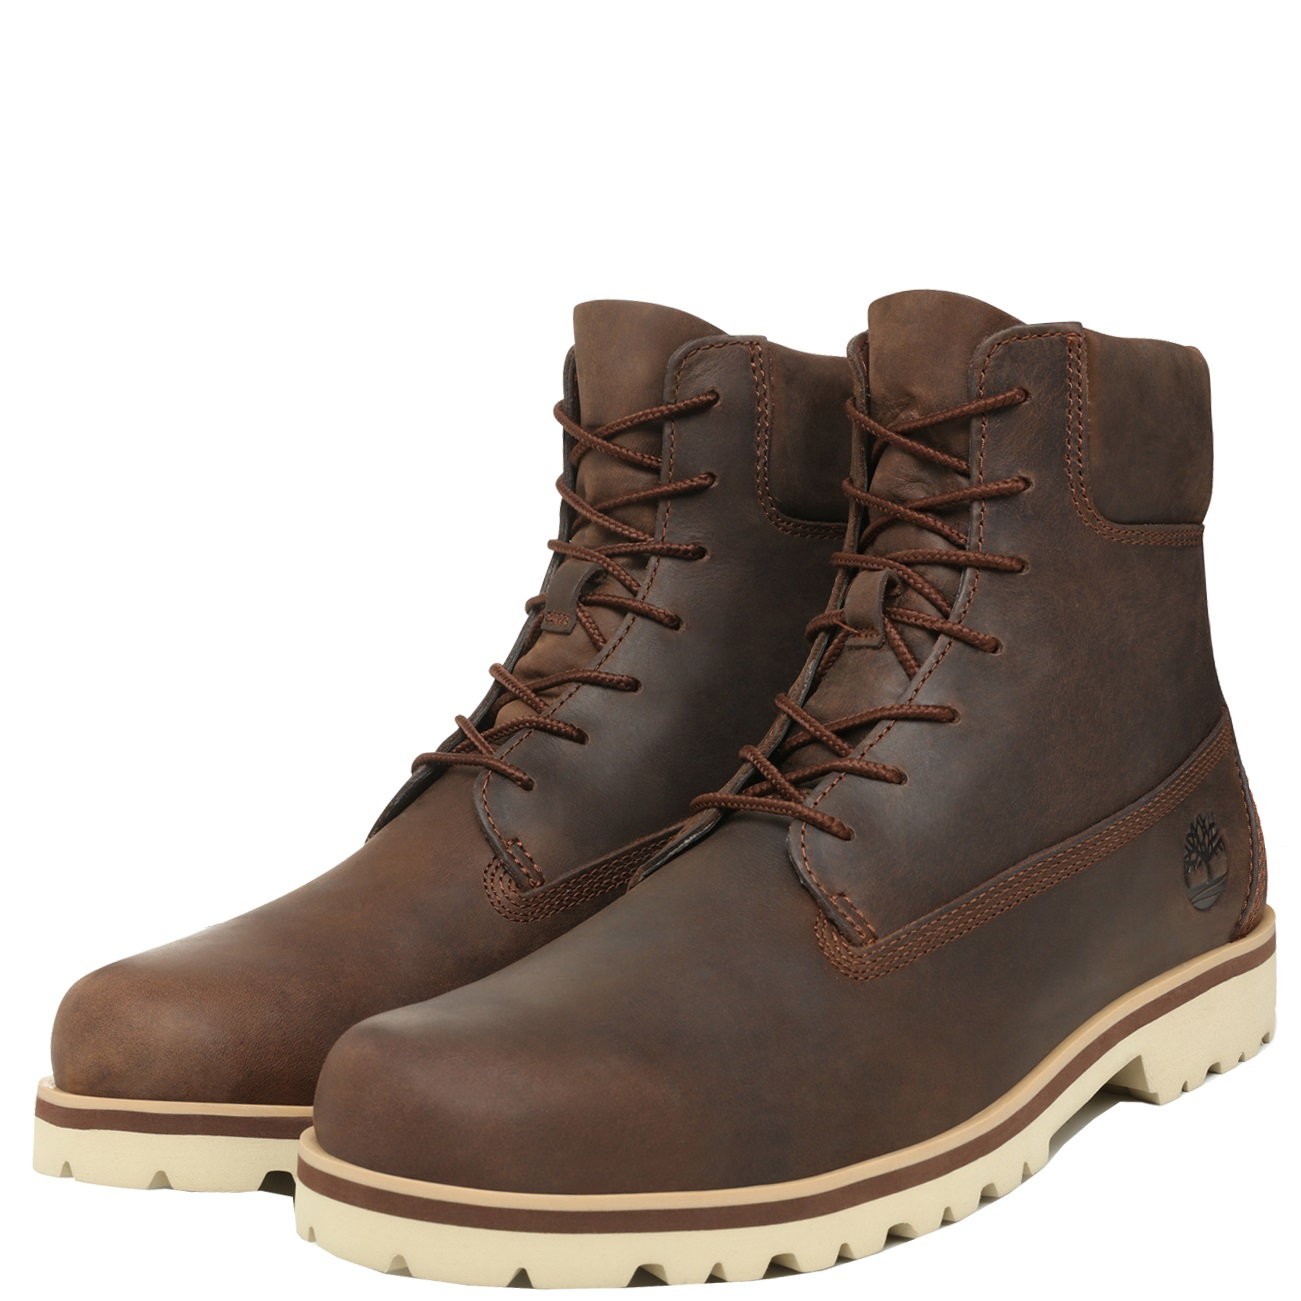 e59aee8e Mens Timberland Chilmark 6 Inch Boot Winter Nubuck Ankle Walking ...